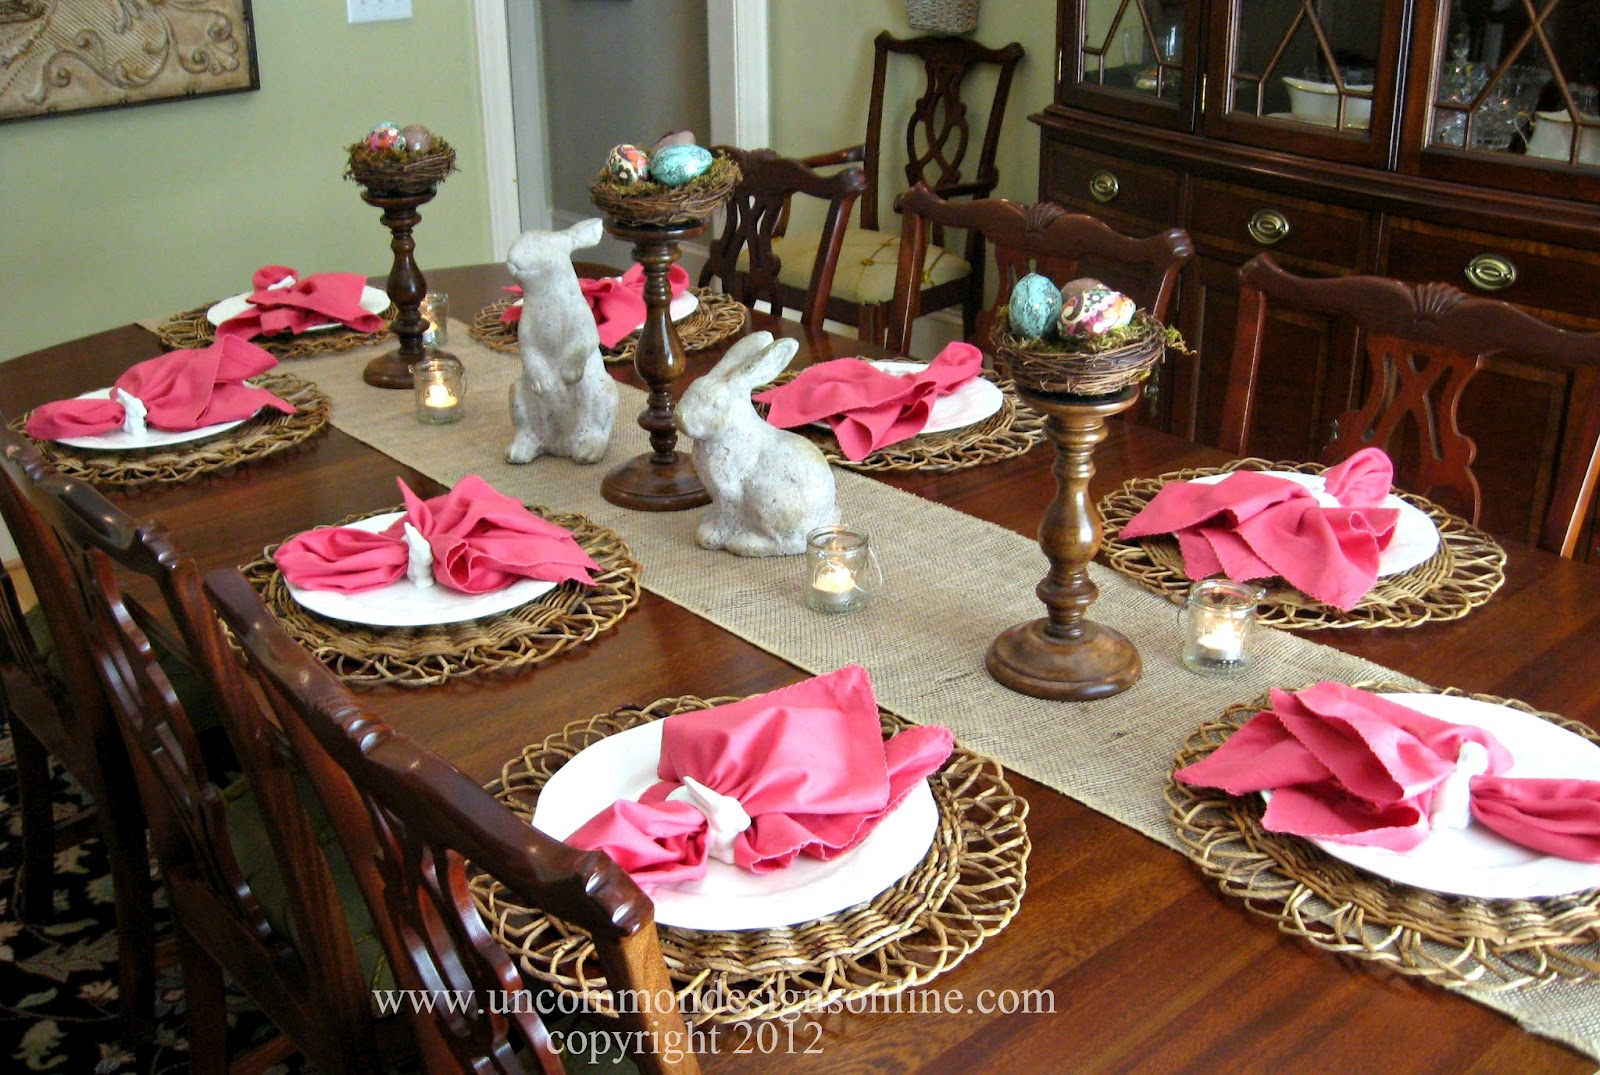 easter tablescapes for everyday living - uncommon designs